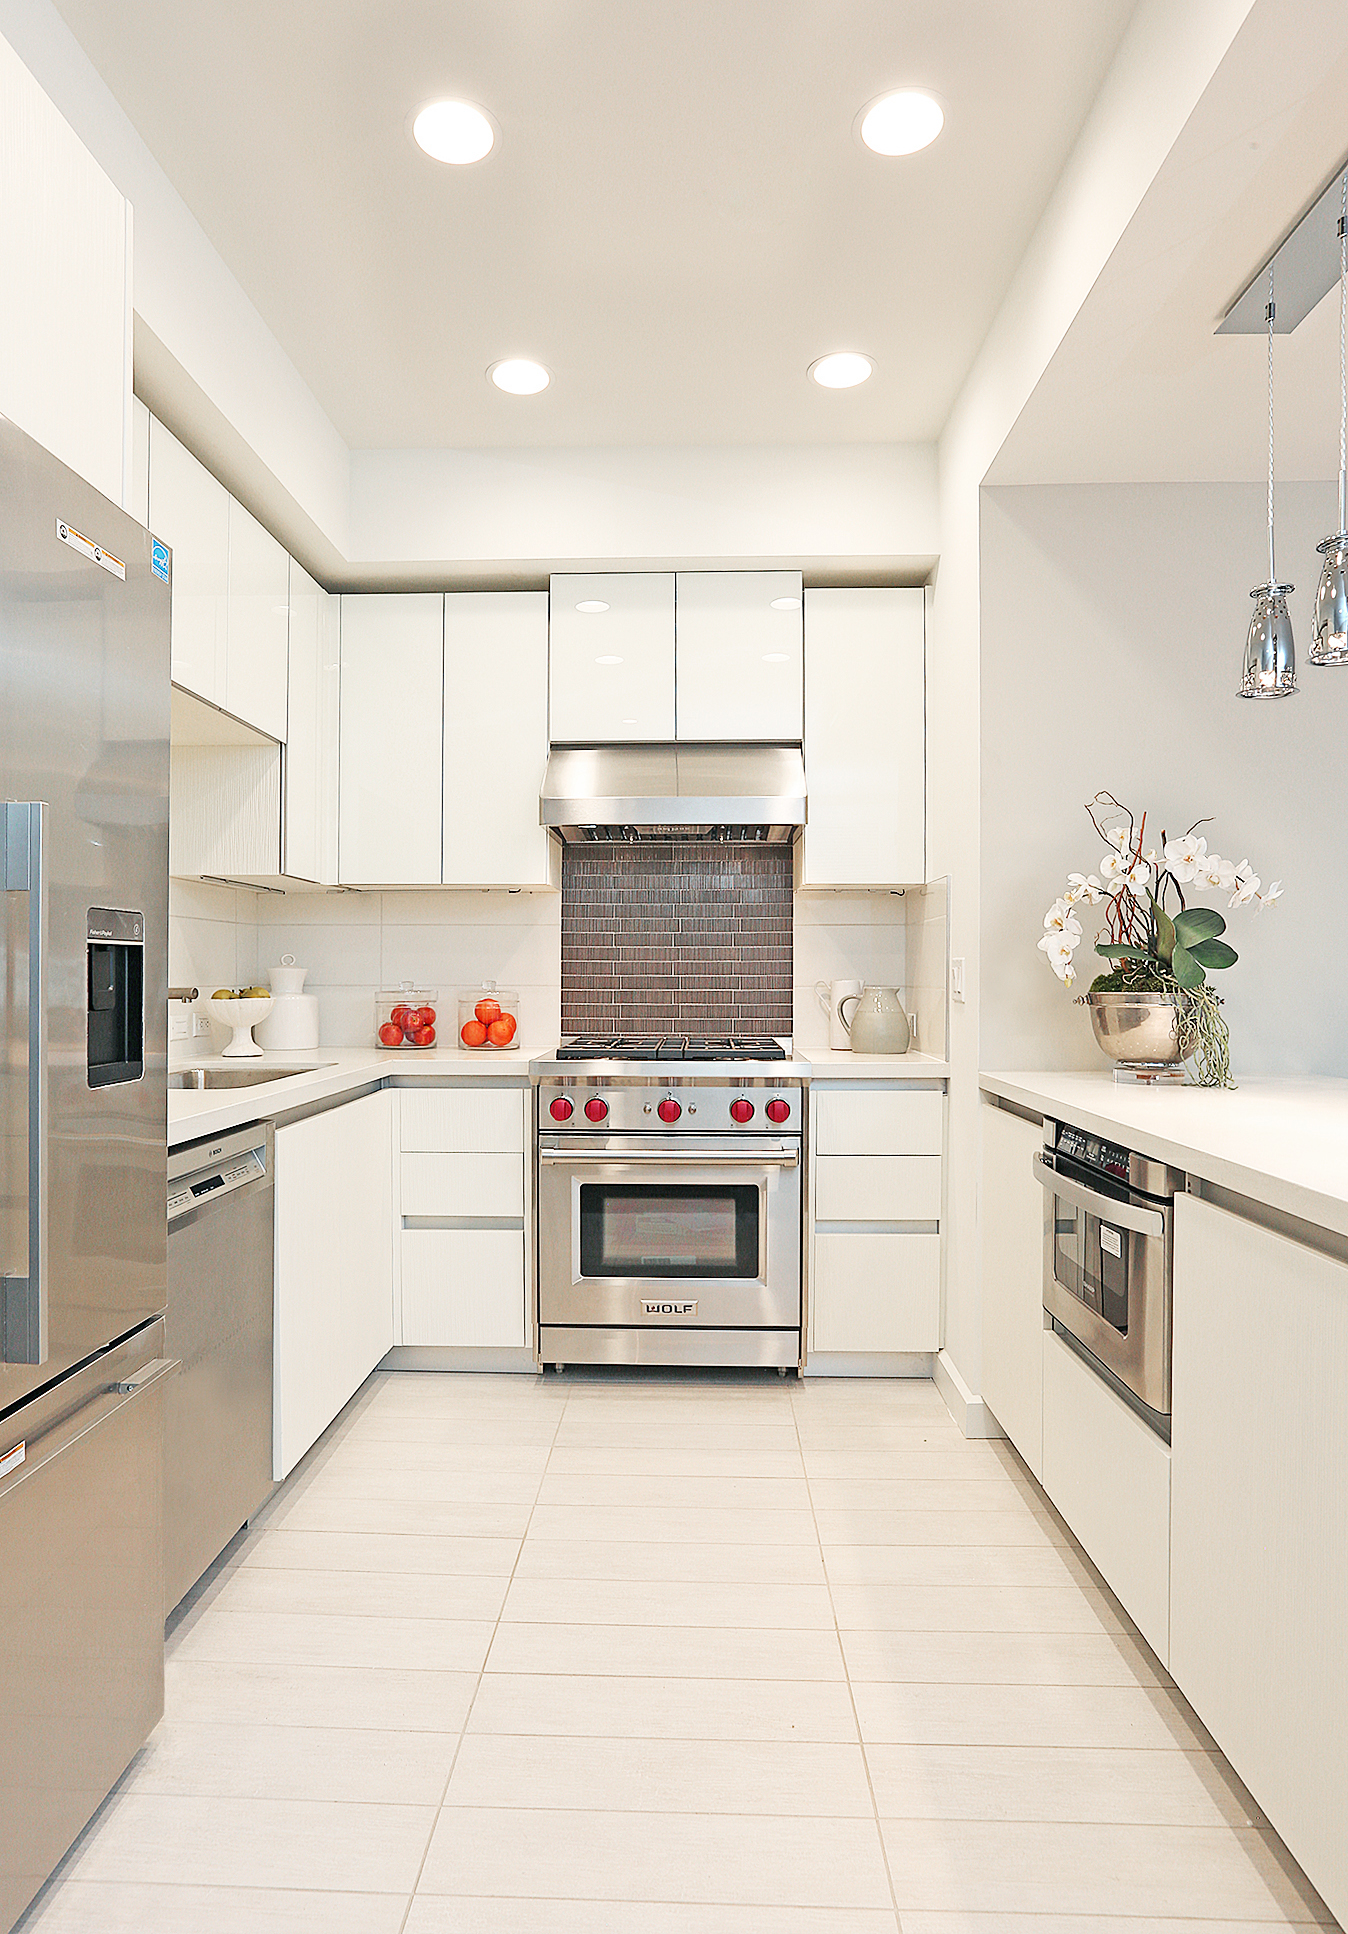 13-Kitchen_Bright.jpg